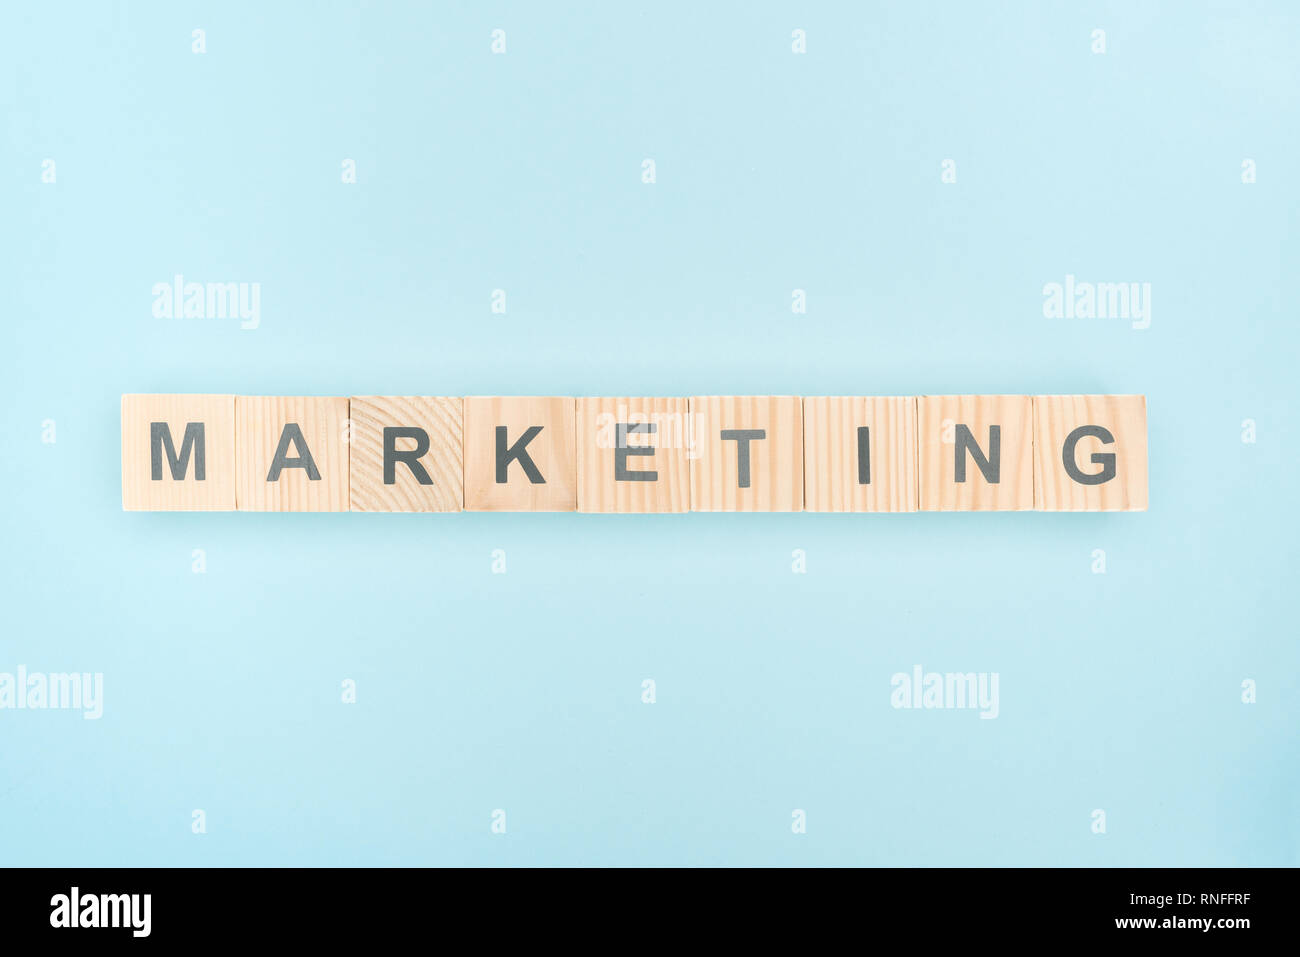 top view of marketing lettering made of wooden cubes on blue background - Stock Image